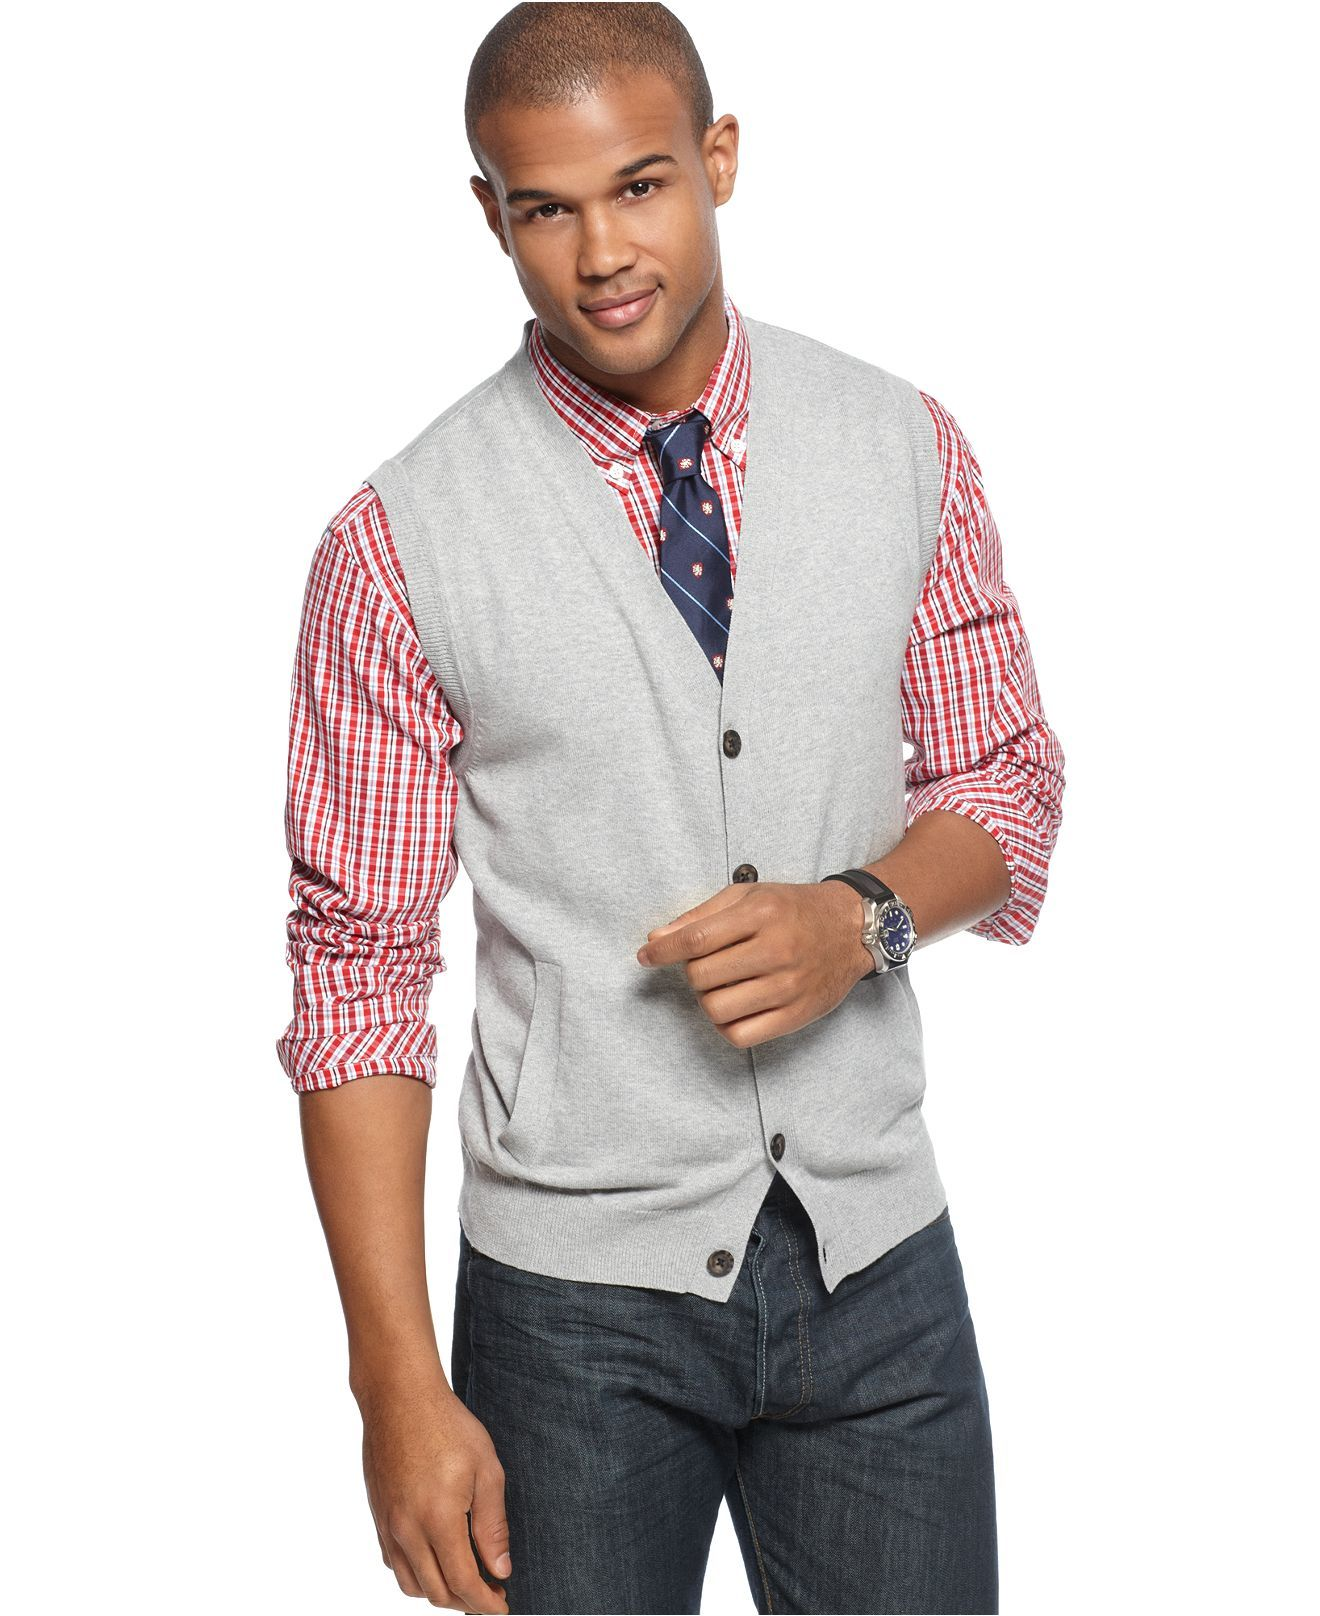 Grey Sweater vest | Summer Wedding Ideas | Pinterest